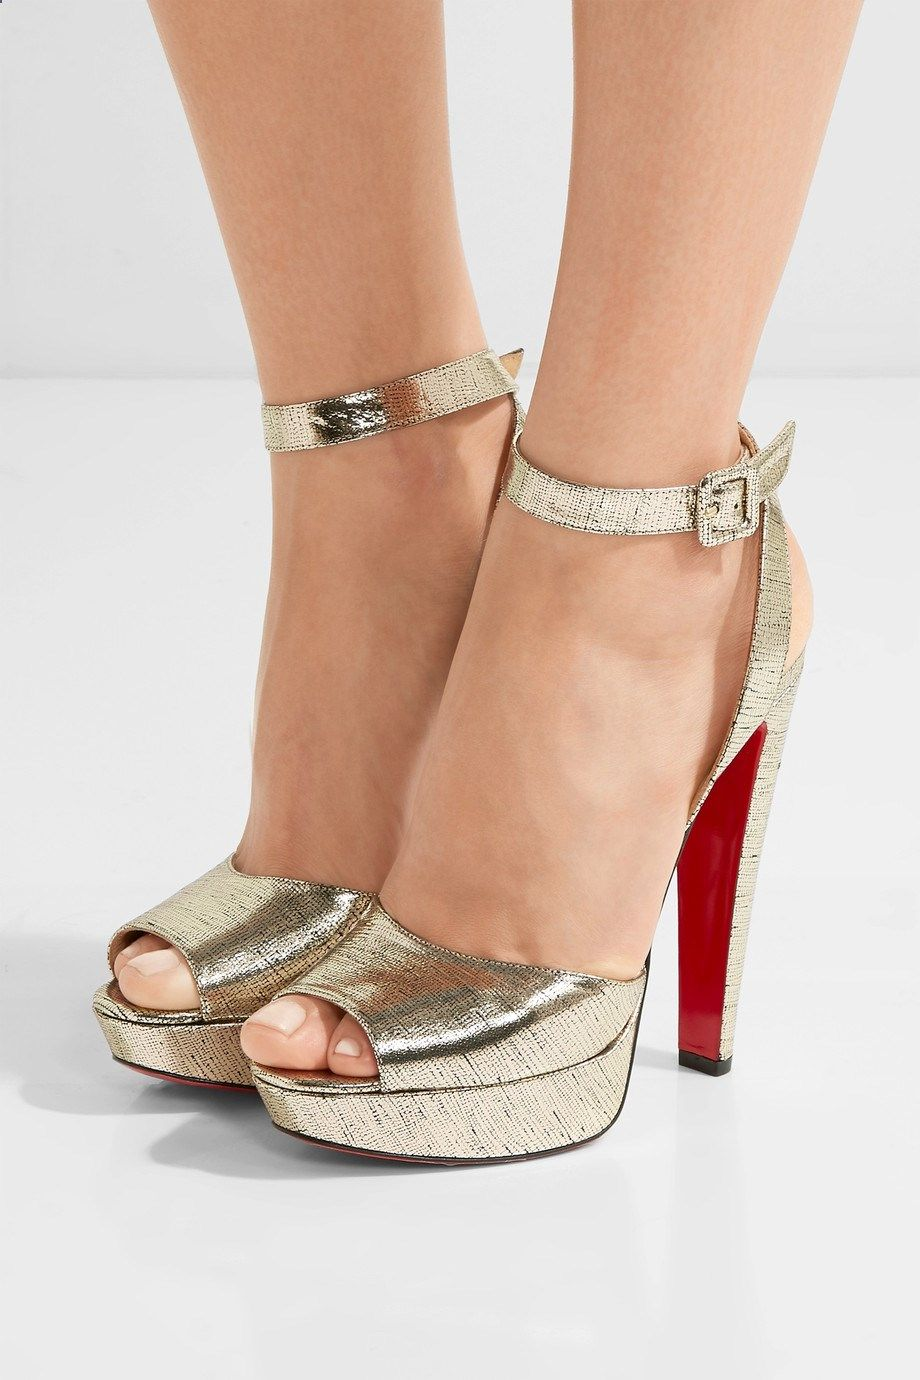 d59118ac3cb2 ... free shipping christian louboutin louloudancing metallic leather platform  sandals 00438 b6f51